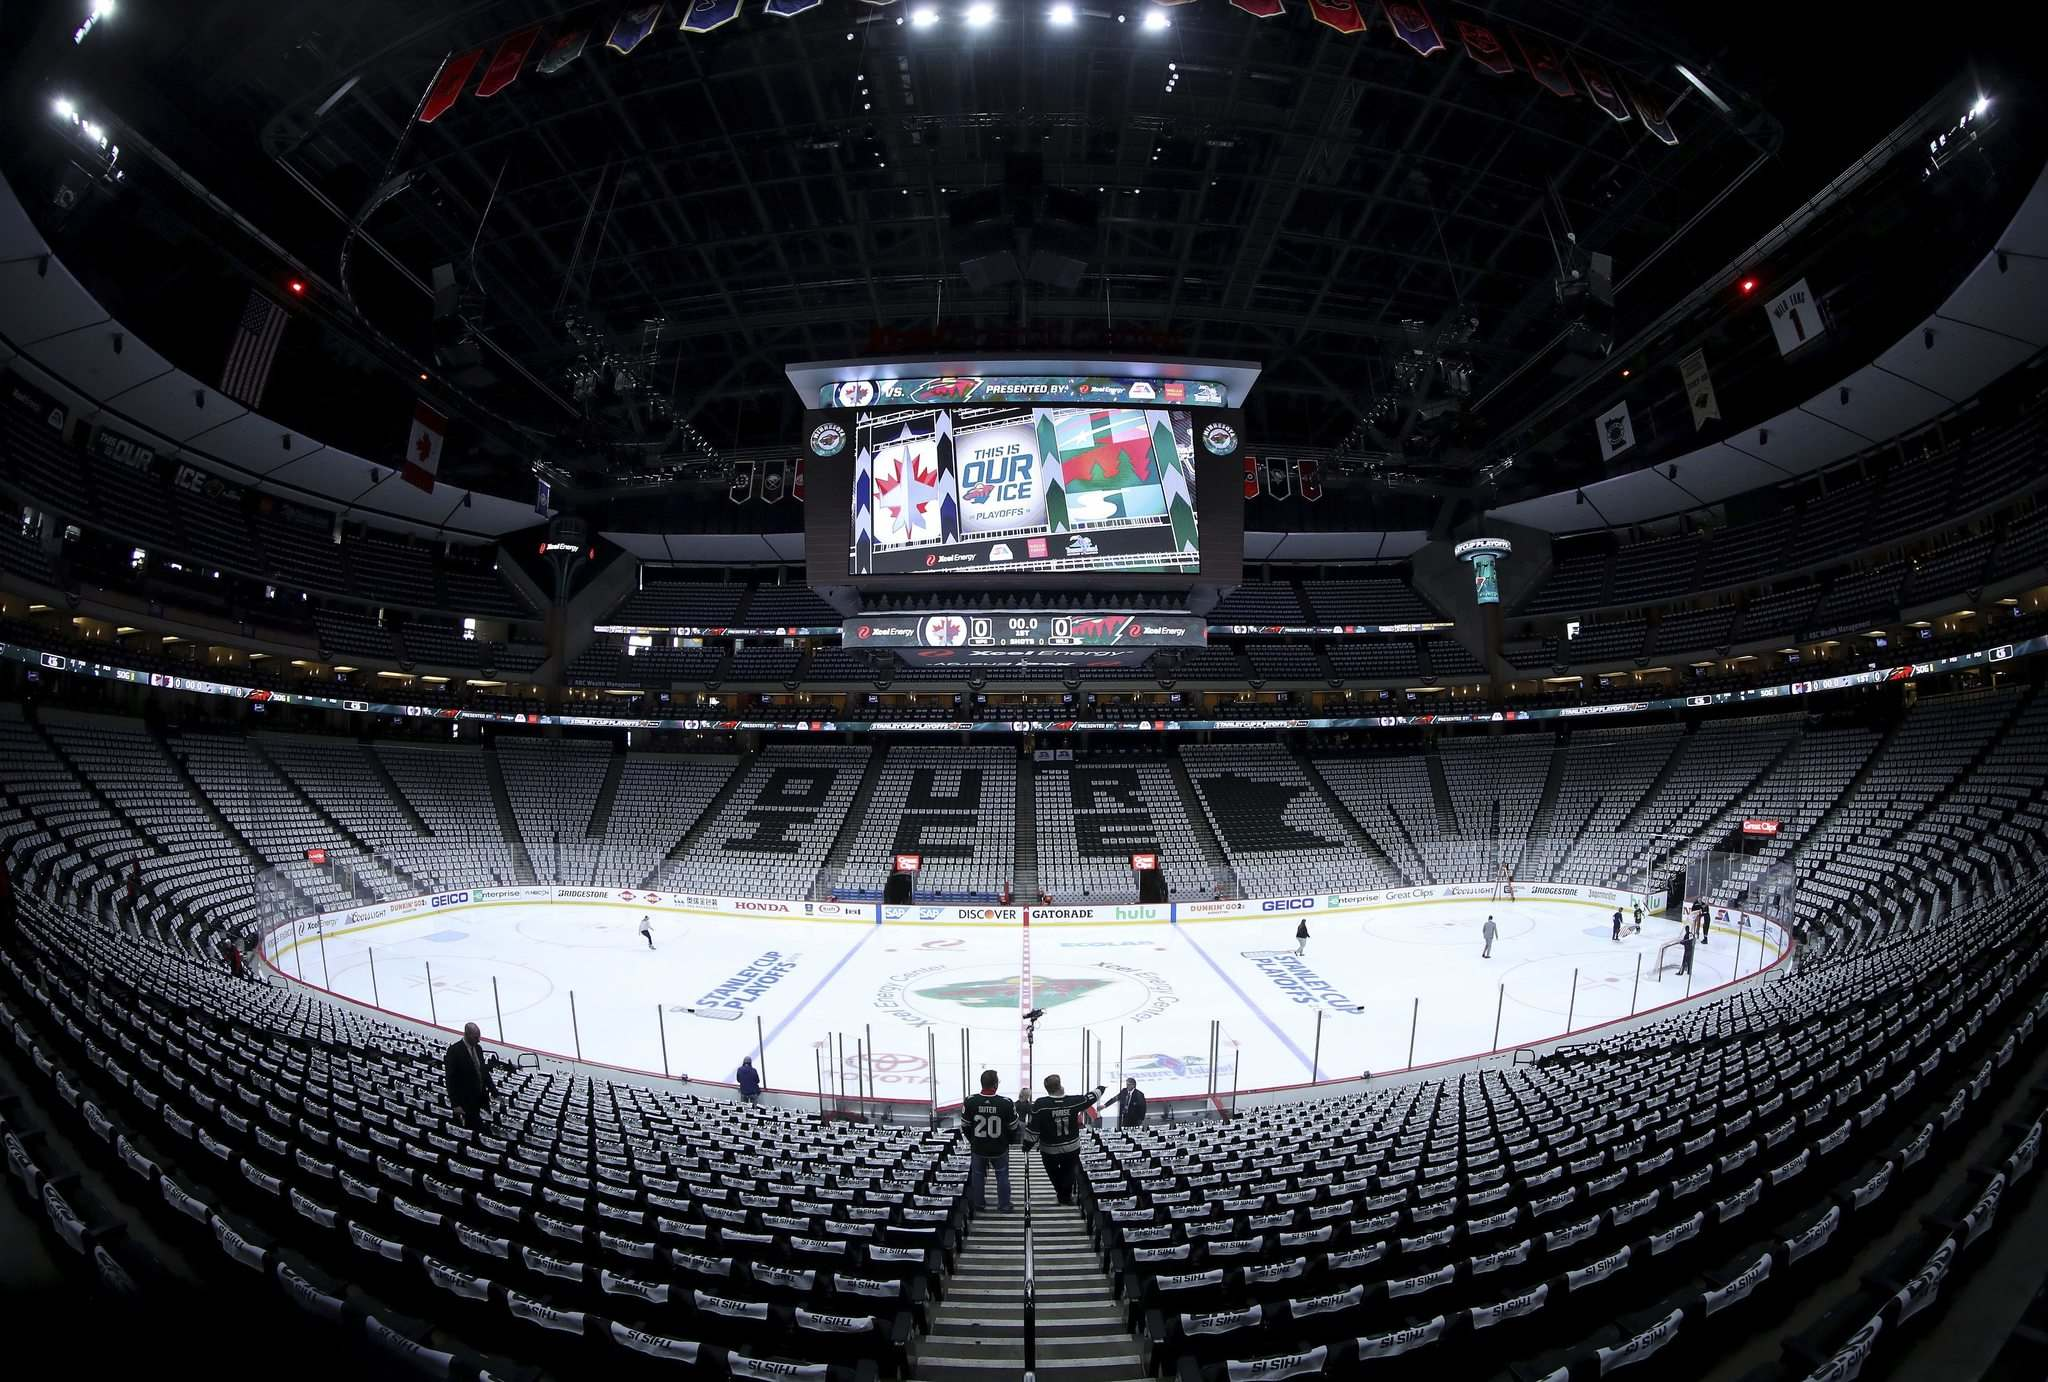 TREVOR HAGAN / WINNIPEG FREE PRESS</p><p>The Xcel Energy Center prior to playoff game 3 between the Winnipeg Jets and Minnesota Wild, Sunday. When travel schedules are rearranged, the visiting team&#39;s time to relax and loosen up can get squeezed.</p>